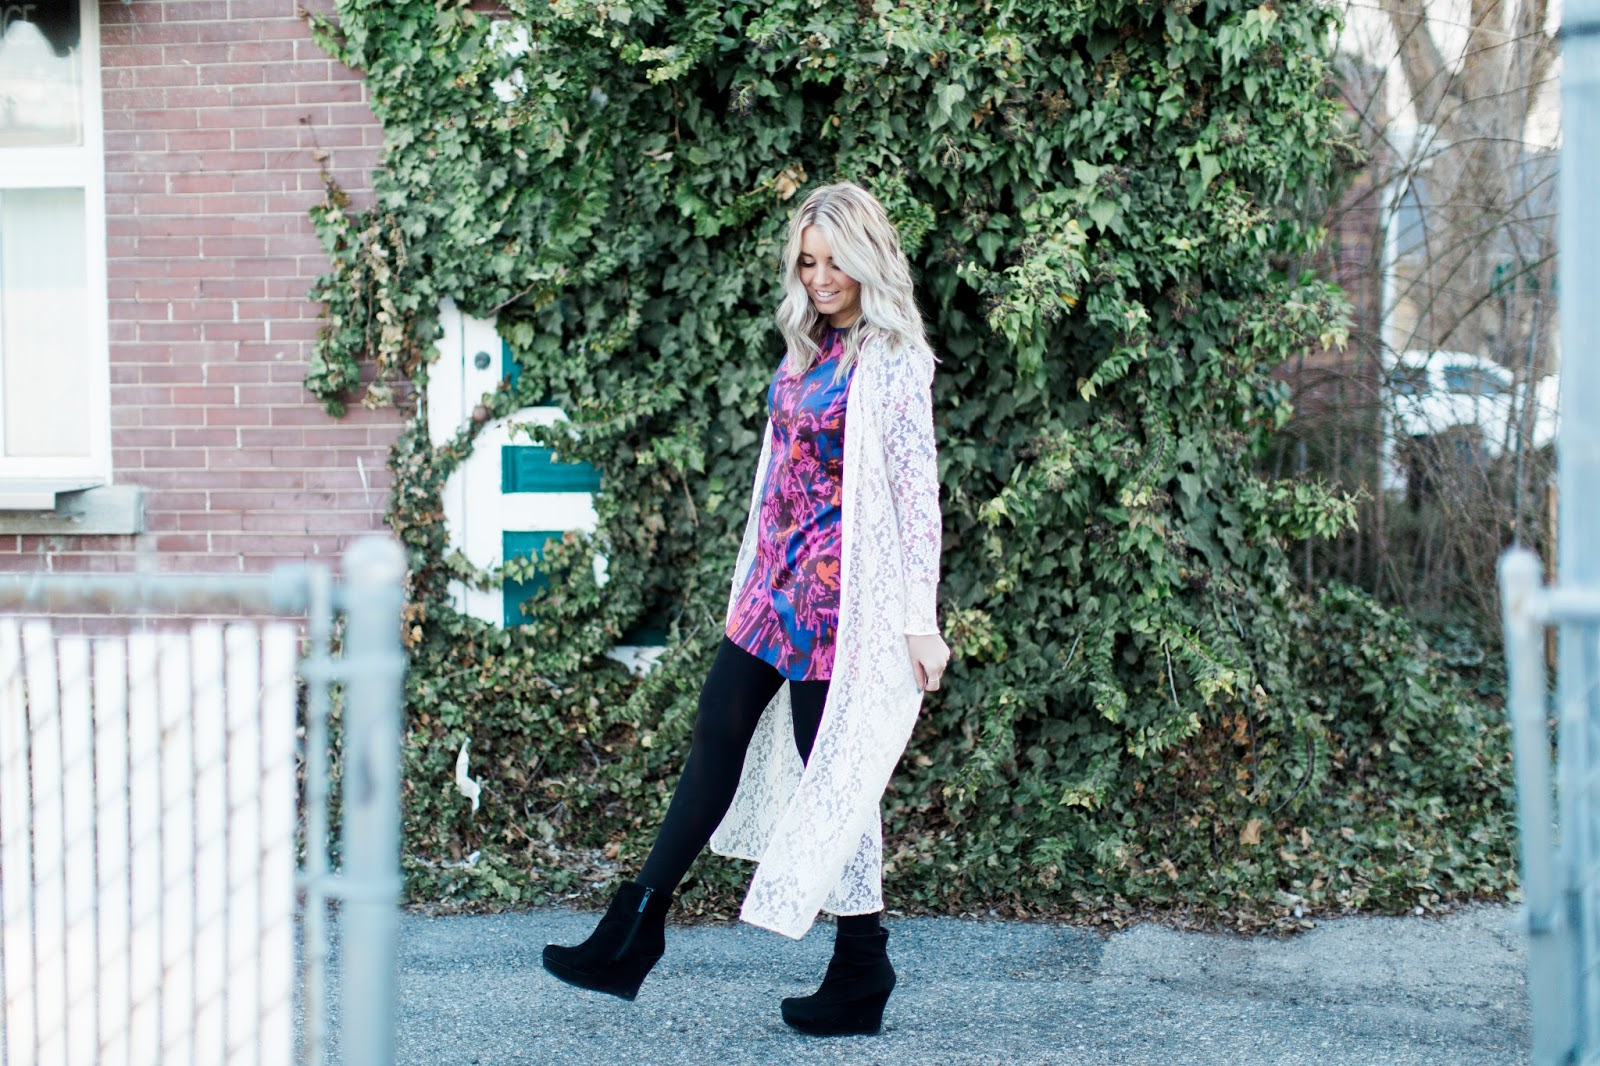 Black Wedge Booties, Floral Dress, Fashion Blogger